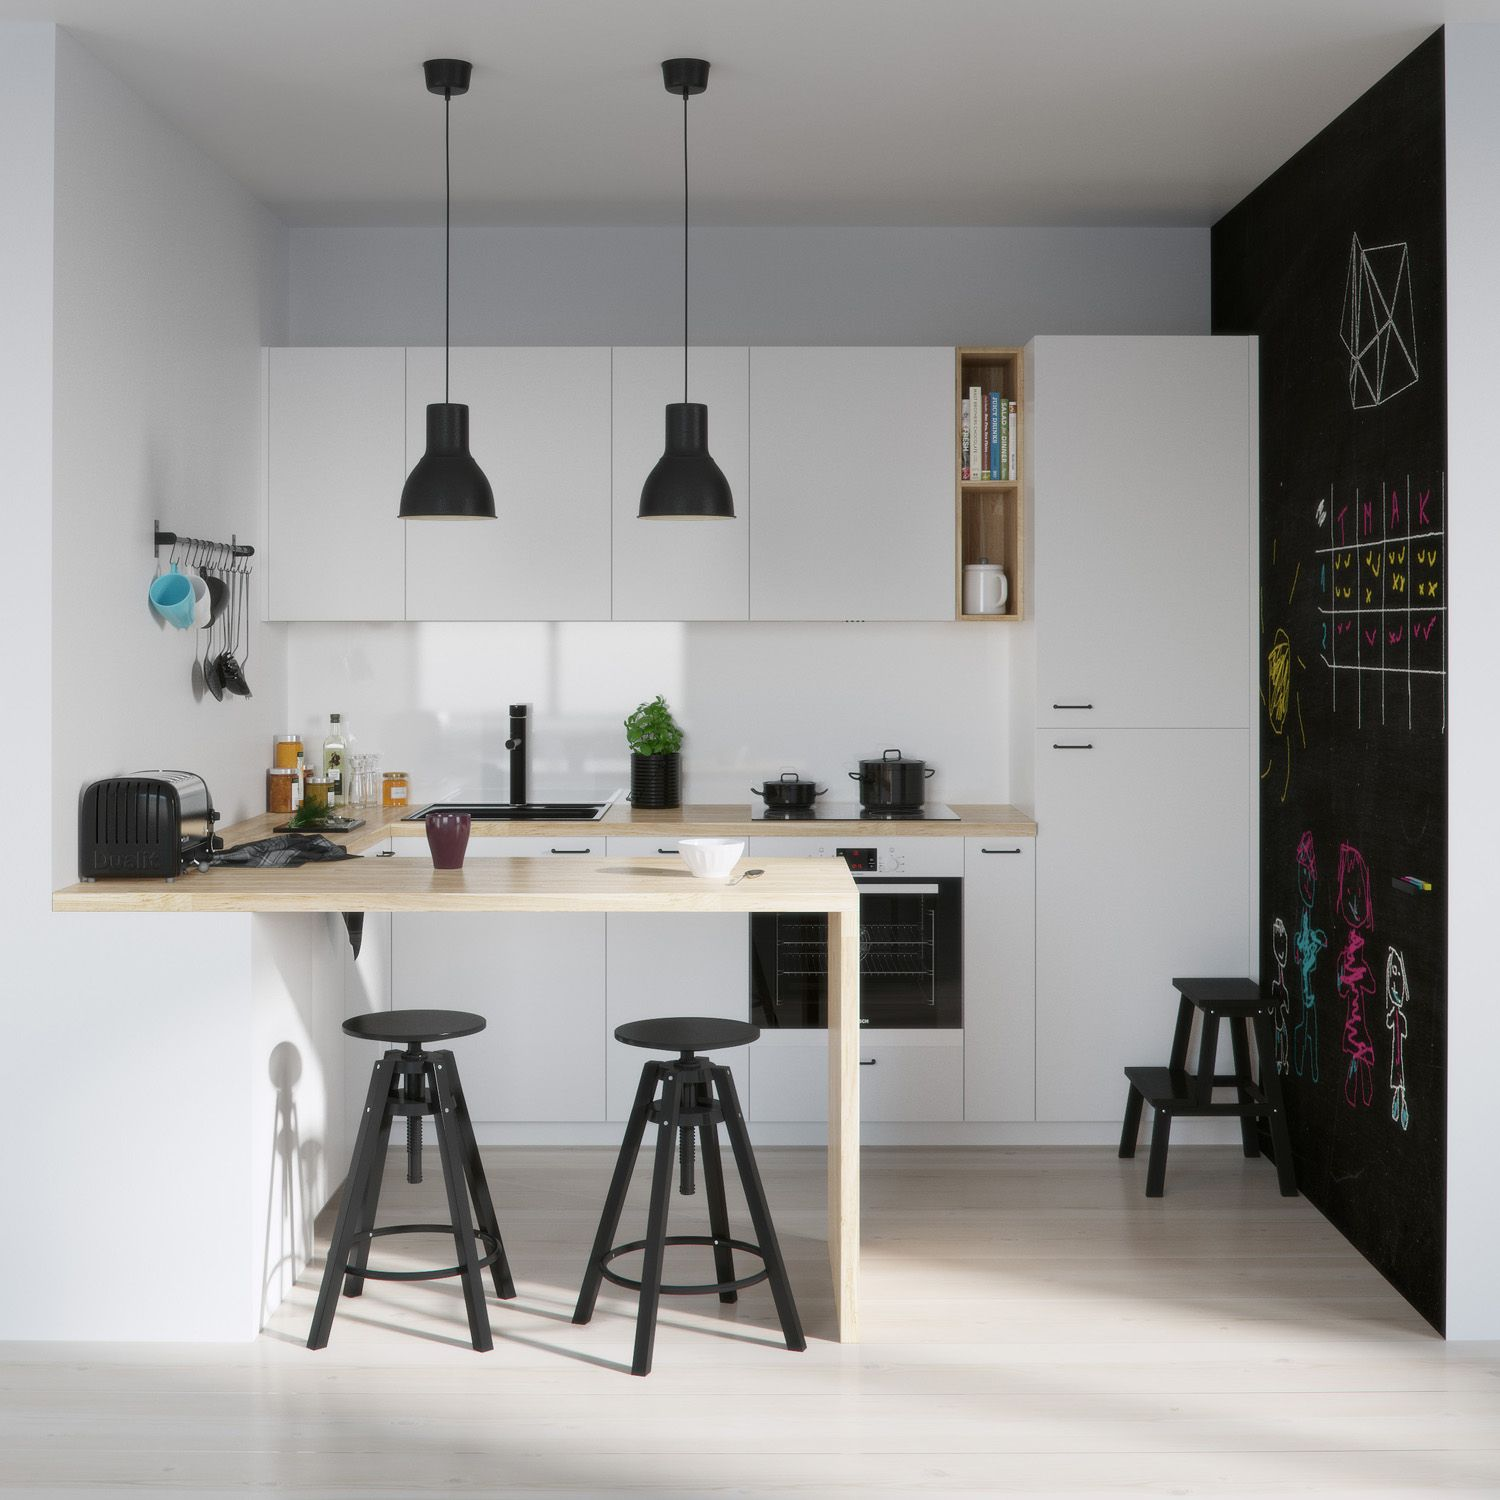 ikea kitchen design. Ikea Kitchen  Tomek Michalski Design Visualization 3d Art